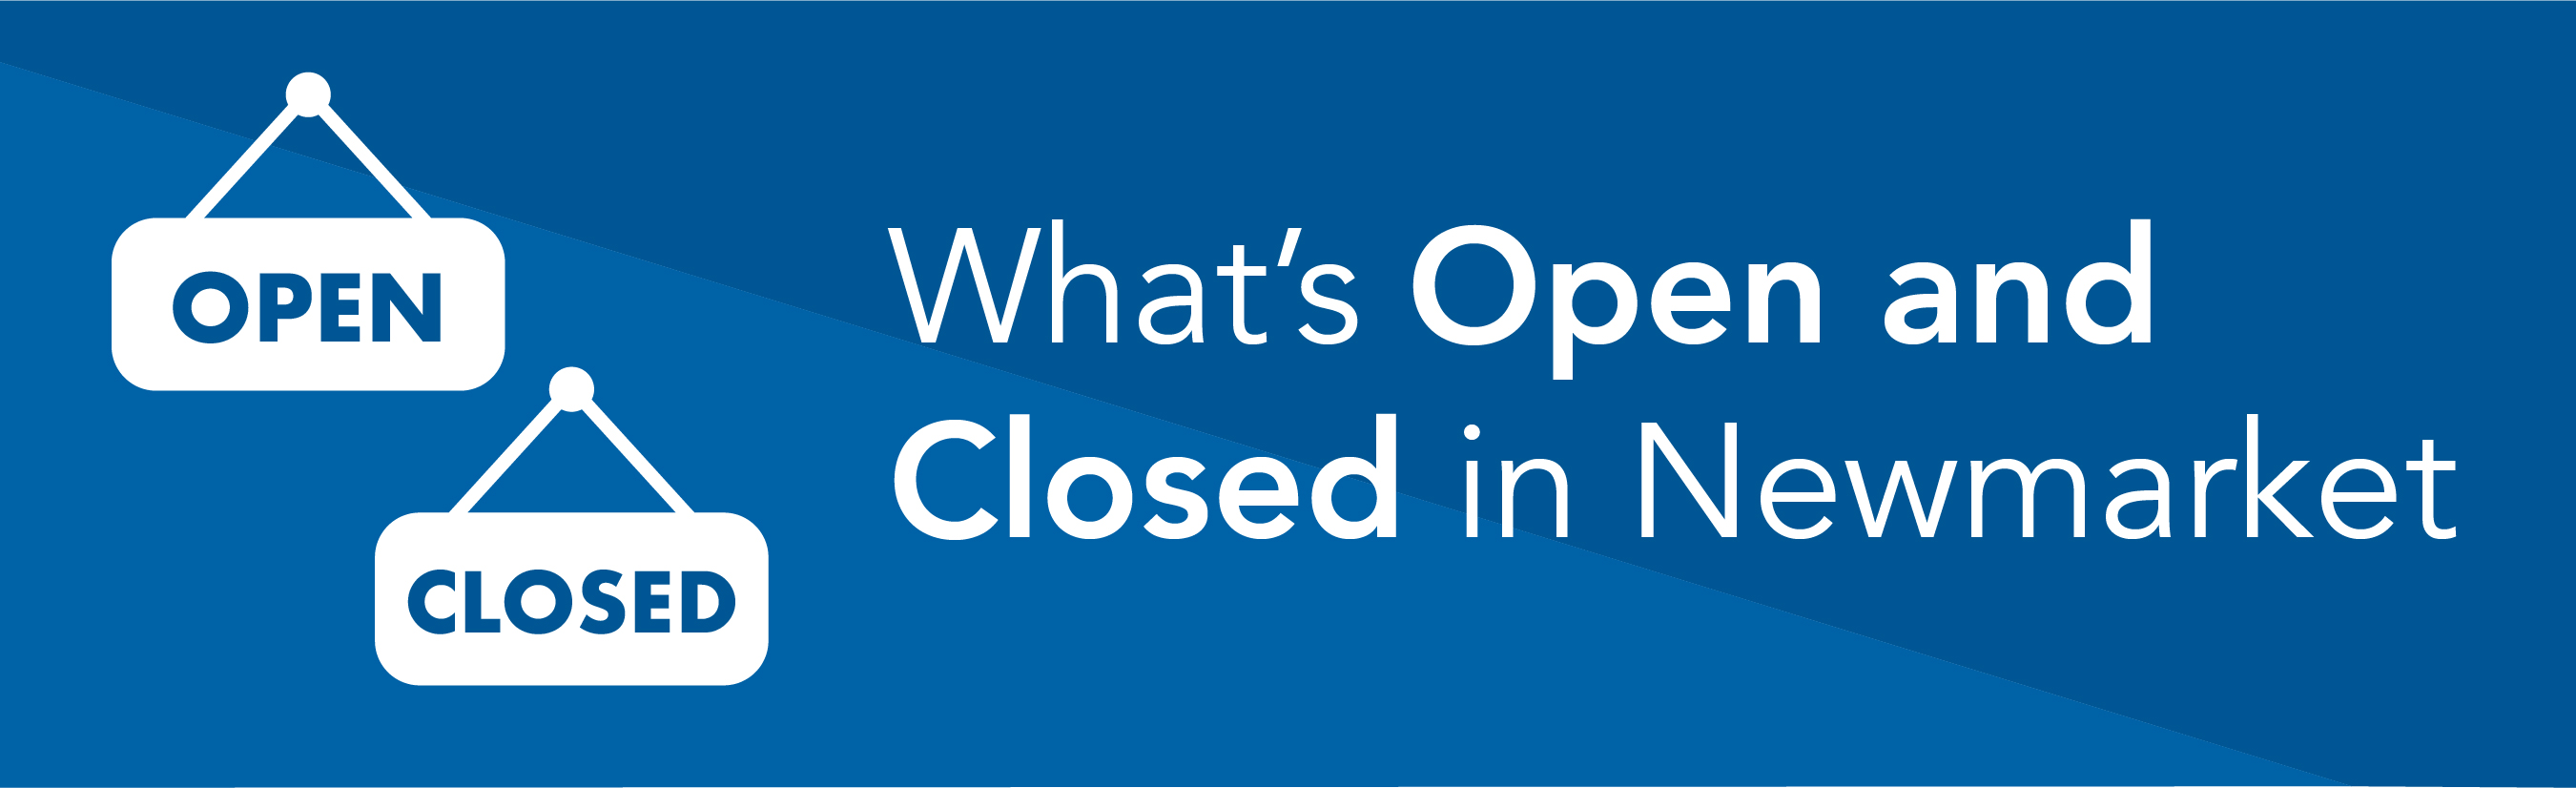 What's Open and Closed in Newmarket Web Banner